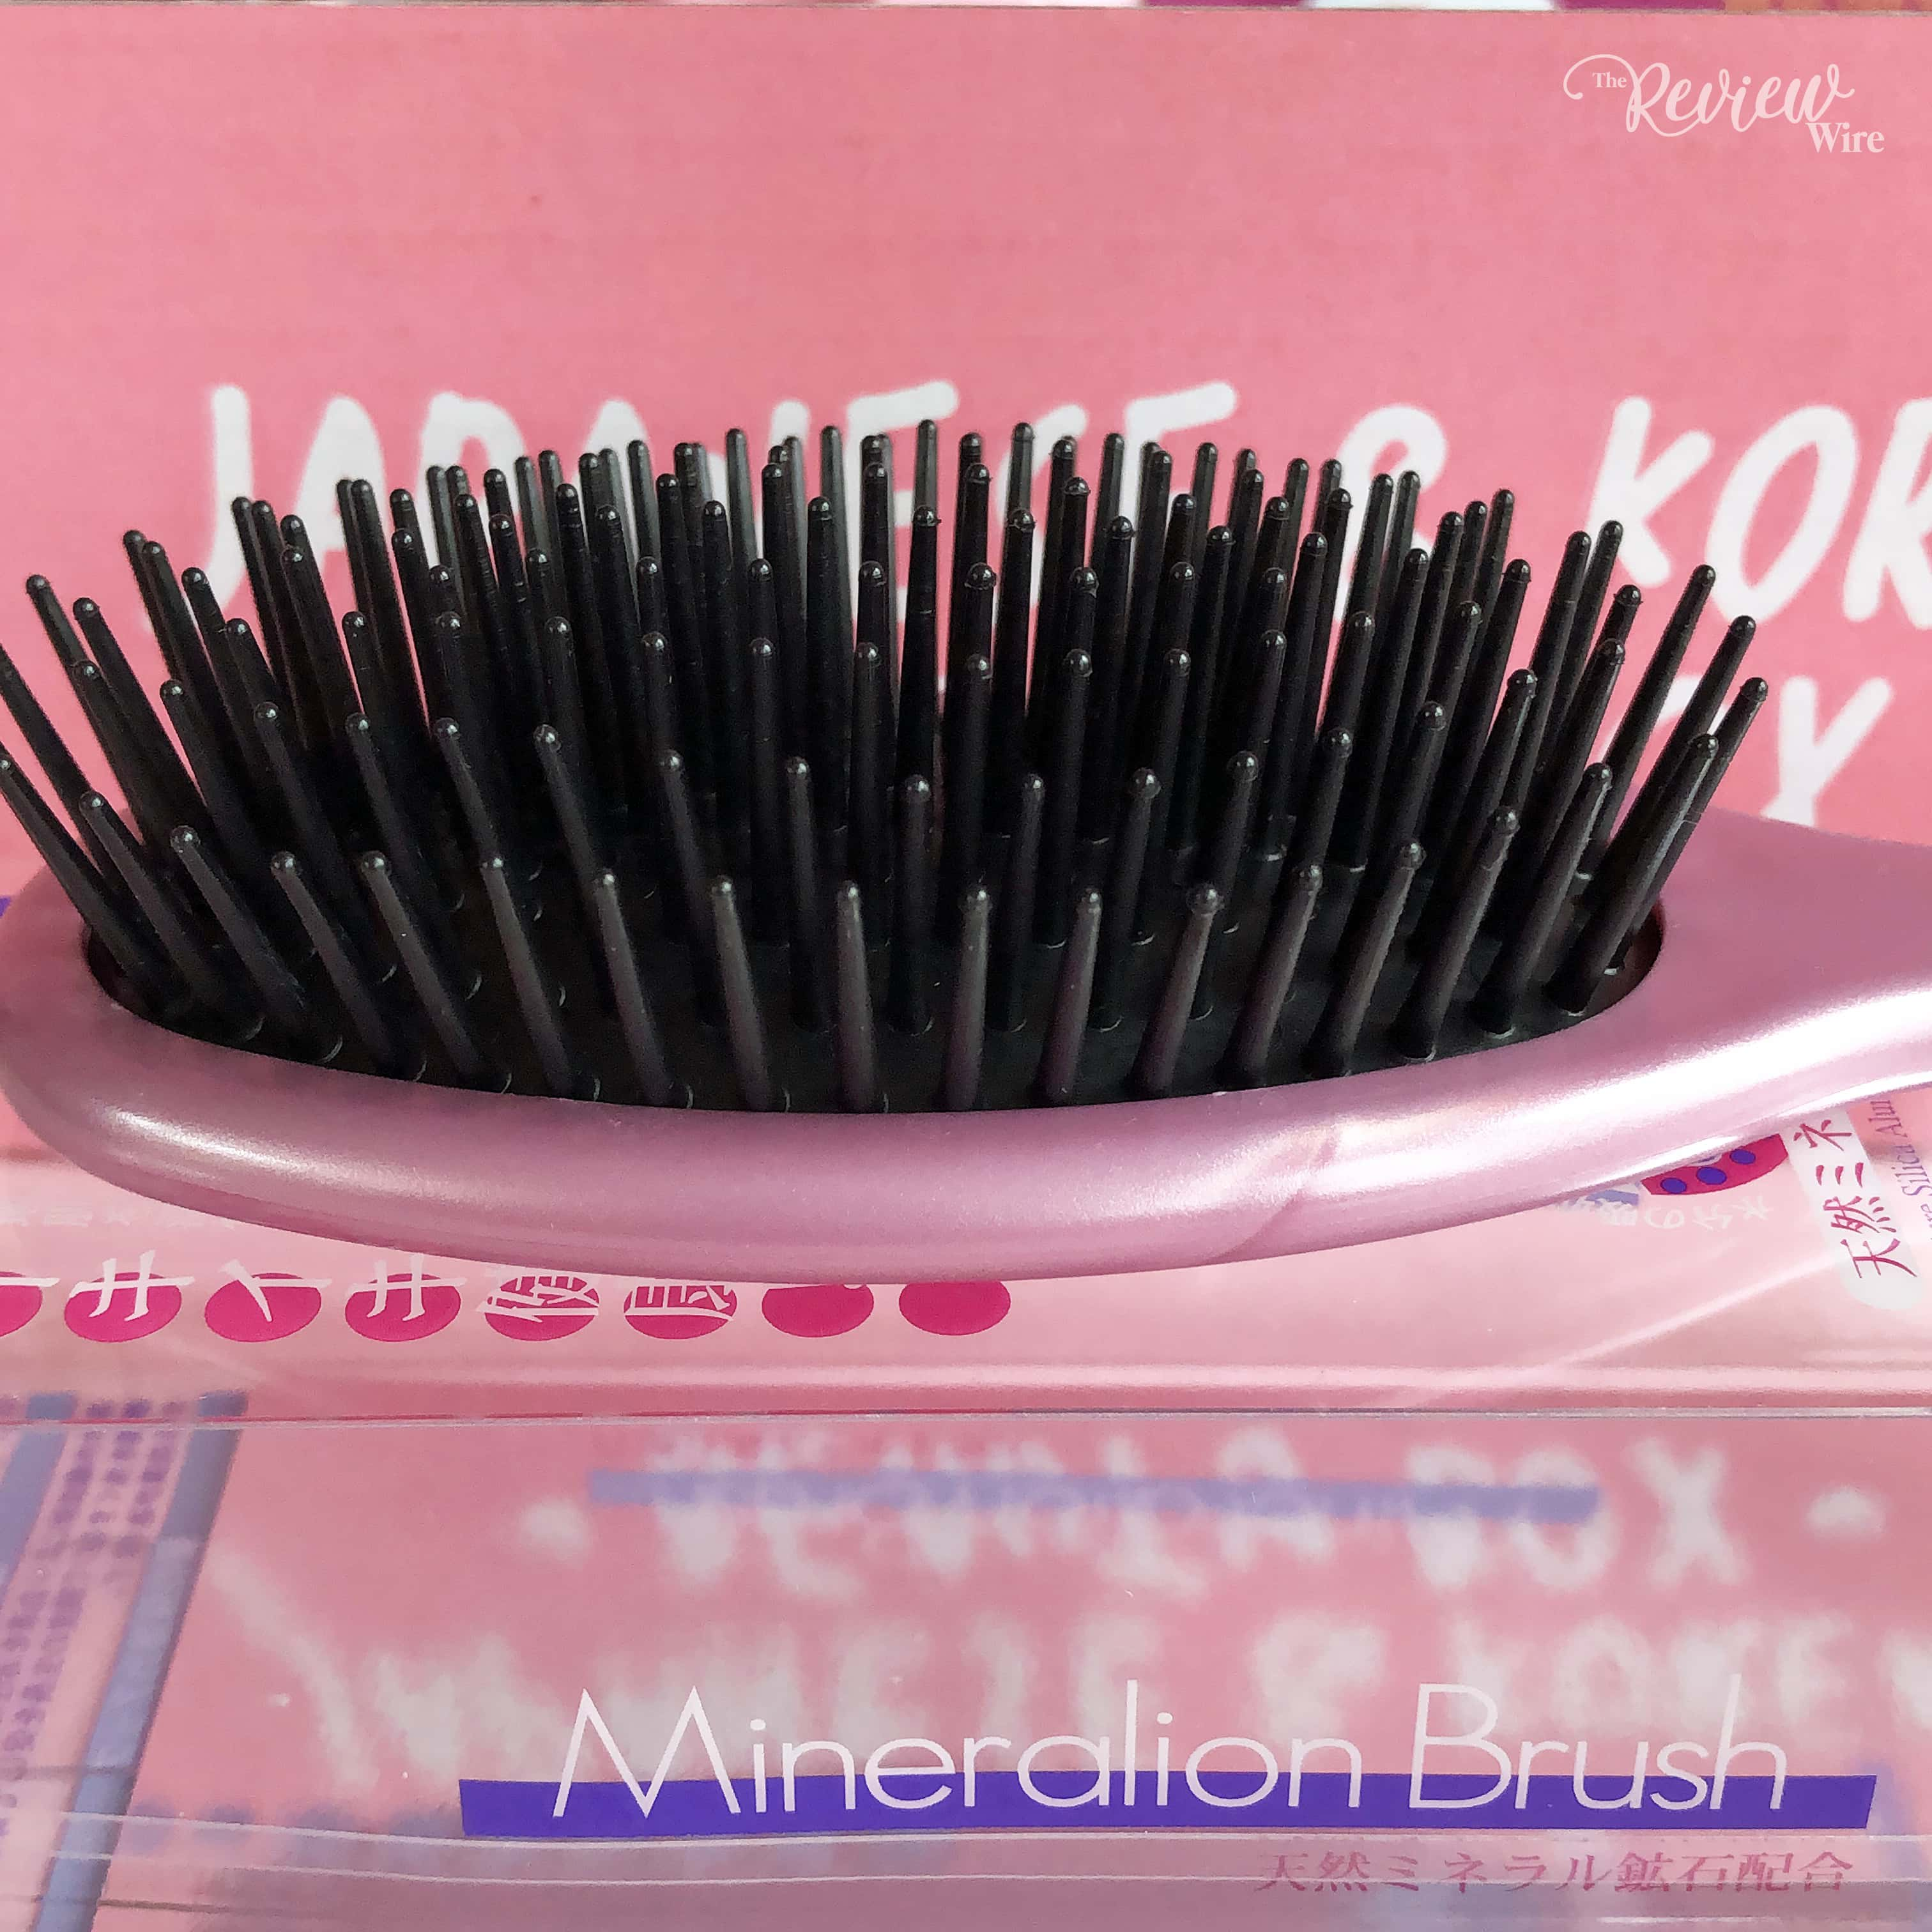 The Review Wire: nomakenolife Korean and Japanese Beauty Box: March 2019 Vibrant Vibes: Mineral Ion Hairbrush